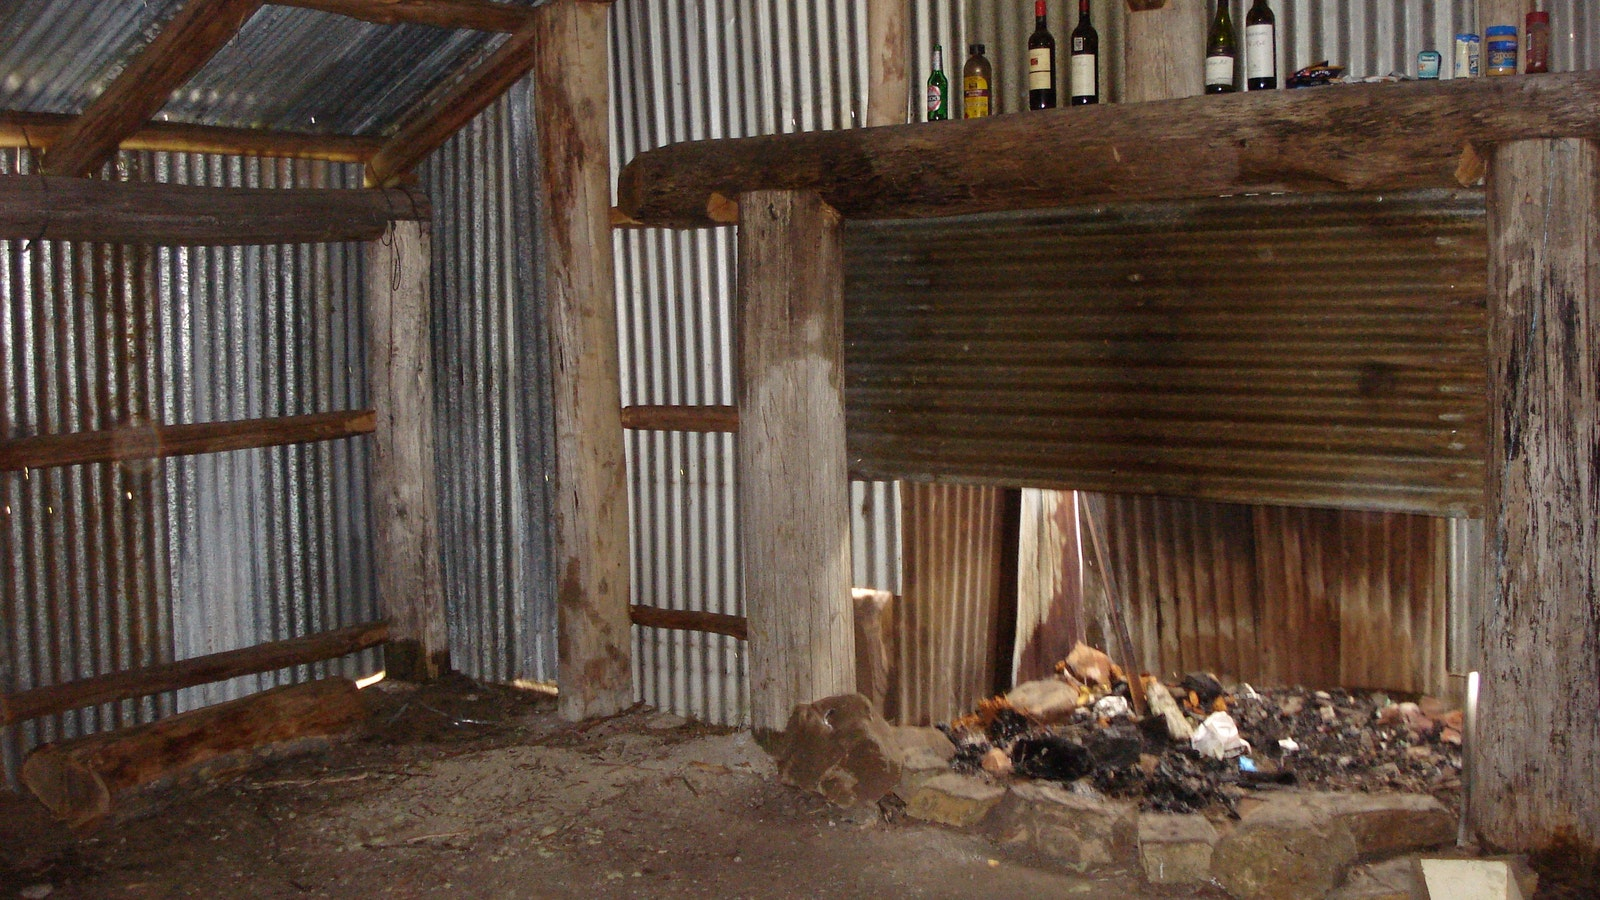 Lovicks Hut inside